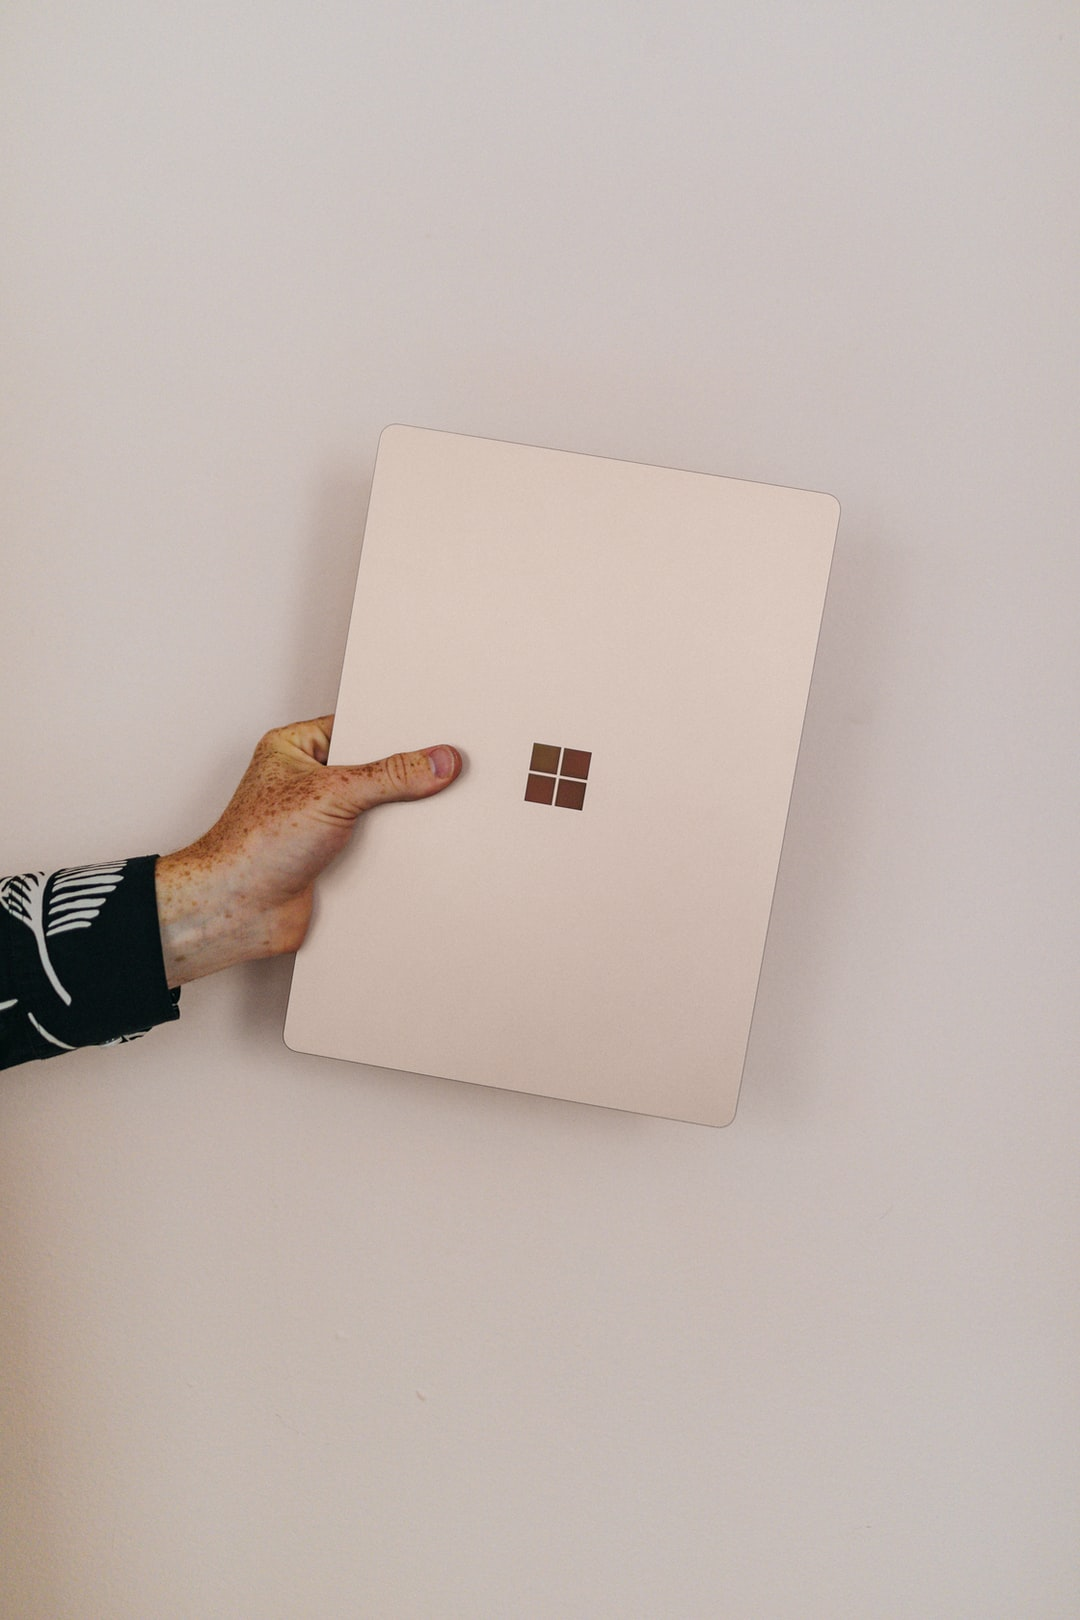 New Microsoft Accessories For Working From Home